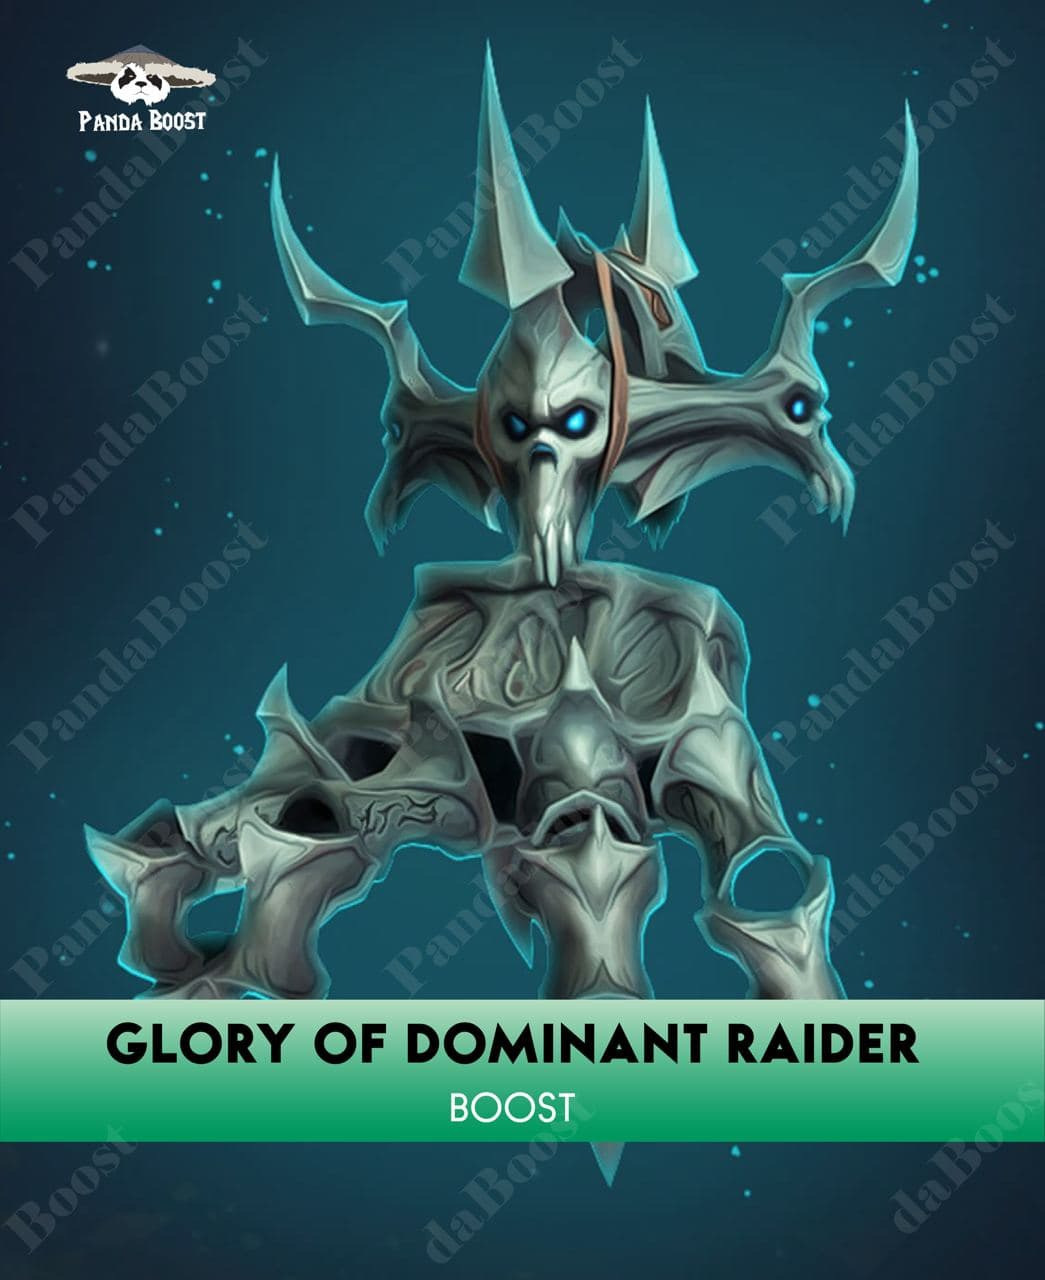 GLORY OF THE DOMINANT RAIDER BOOST